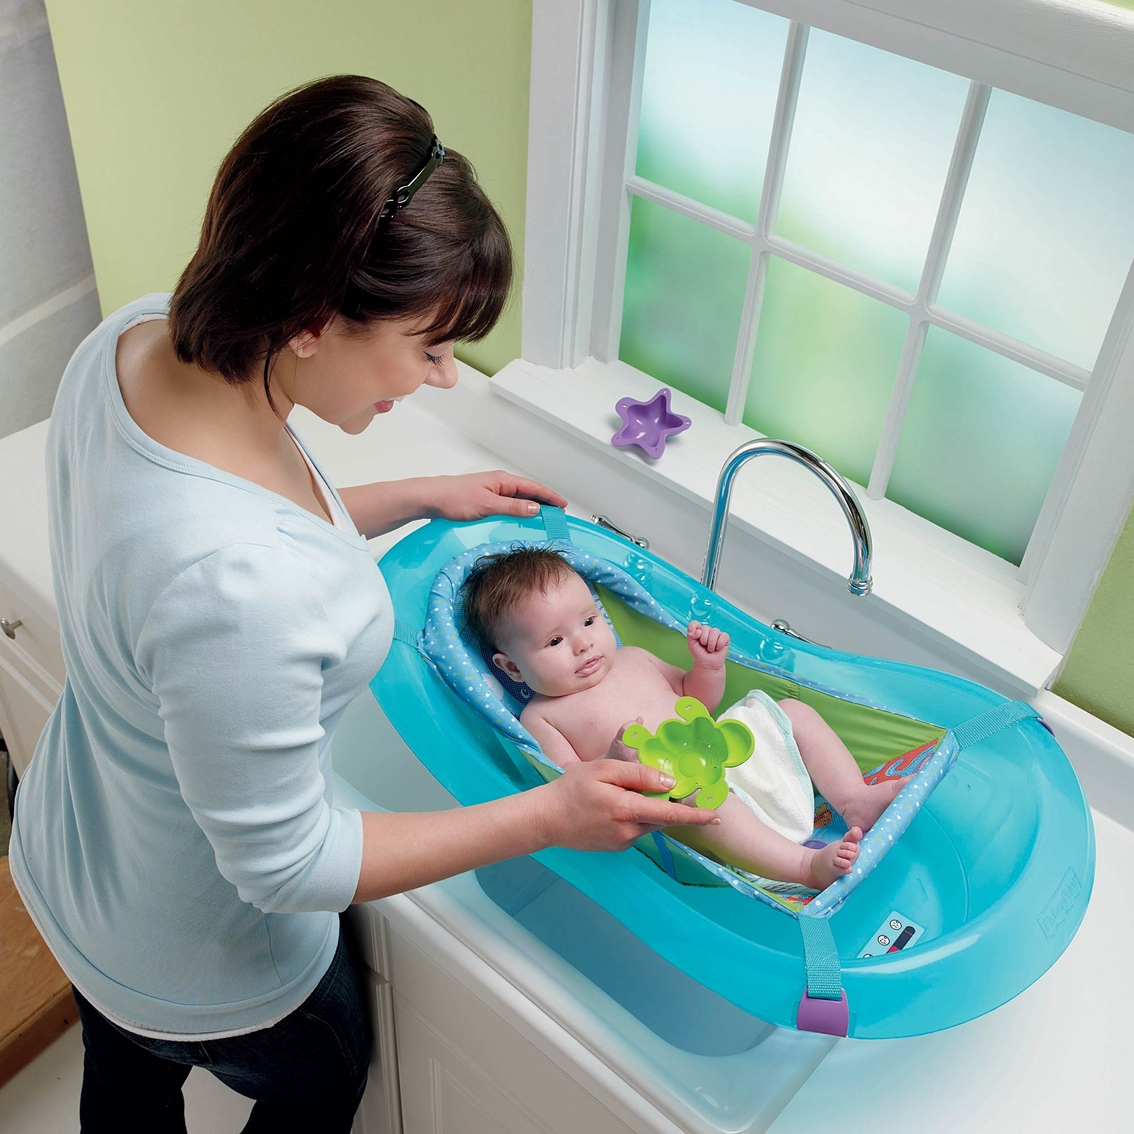 fisher price ocean wonders aquarium bathtub tubs baby toys shop the exchange. Black Bedroom Furniture Sets. Home Design Ideas